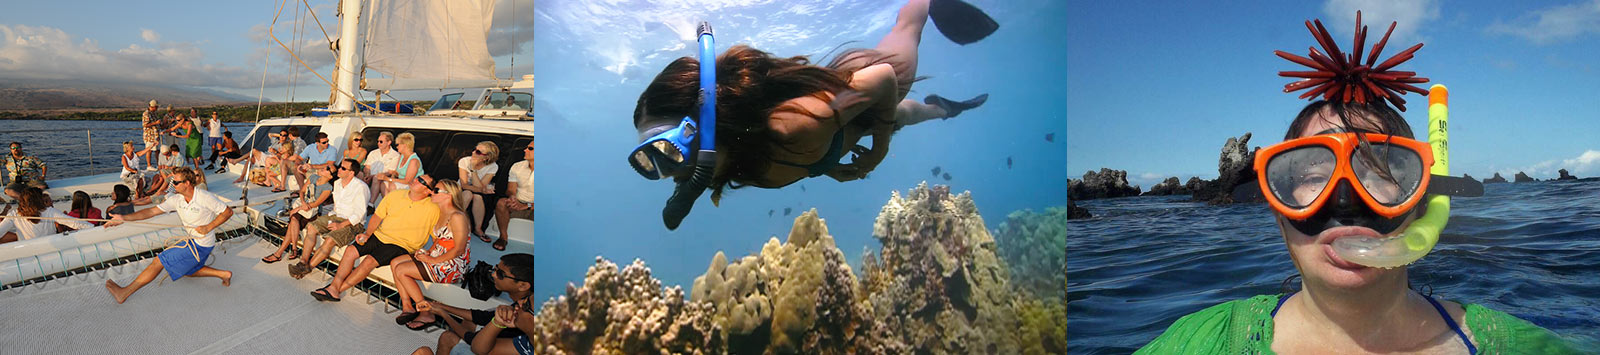 Hawaiian Ocean Sports - Snorkel Cruises